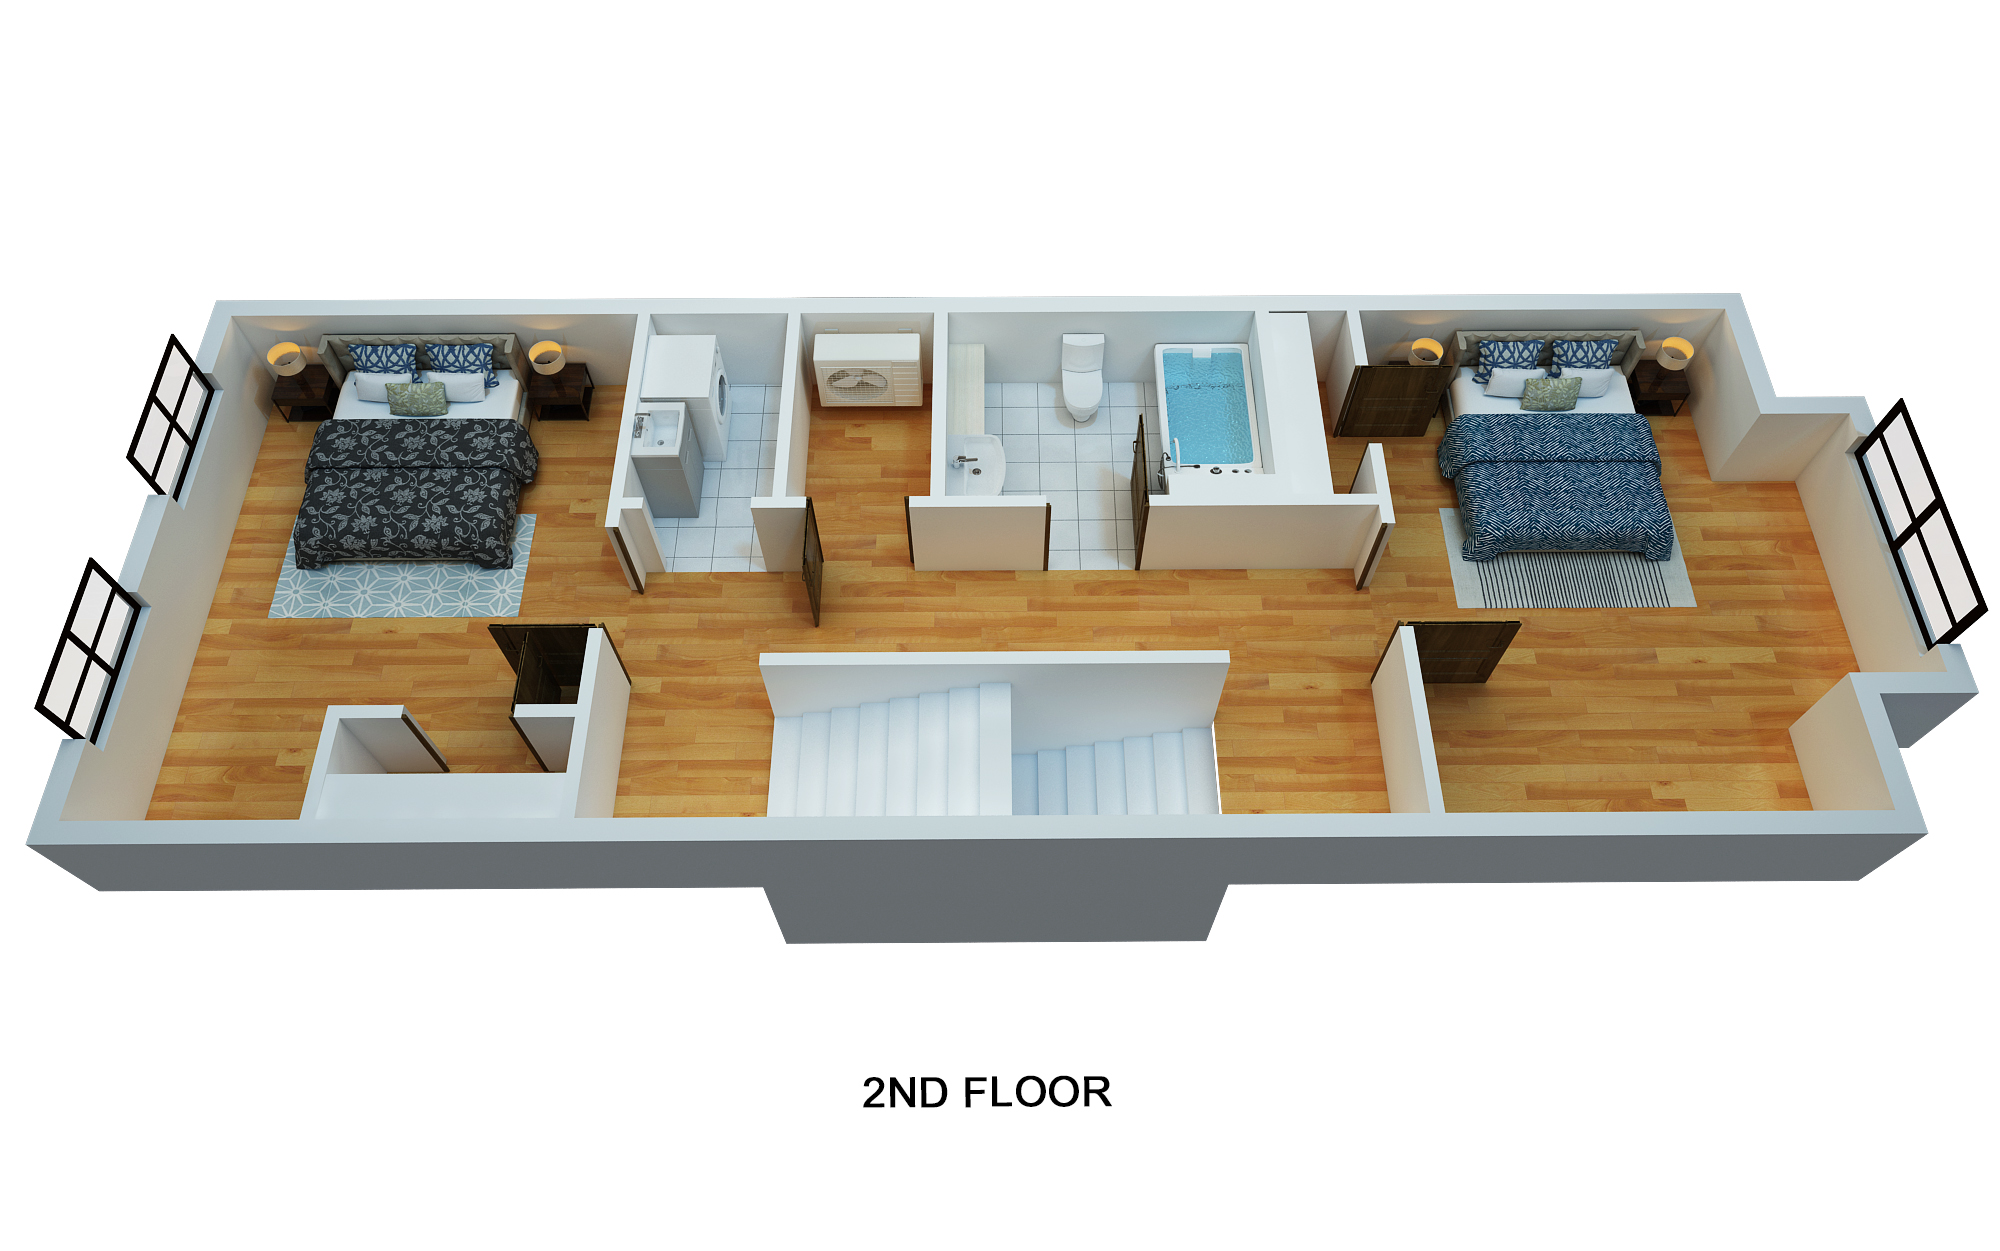 8112-secondfloor.jpg